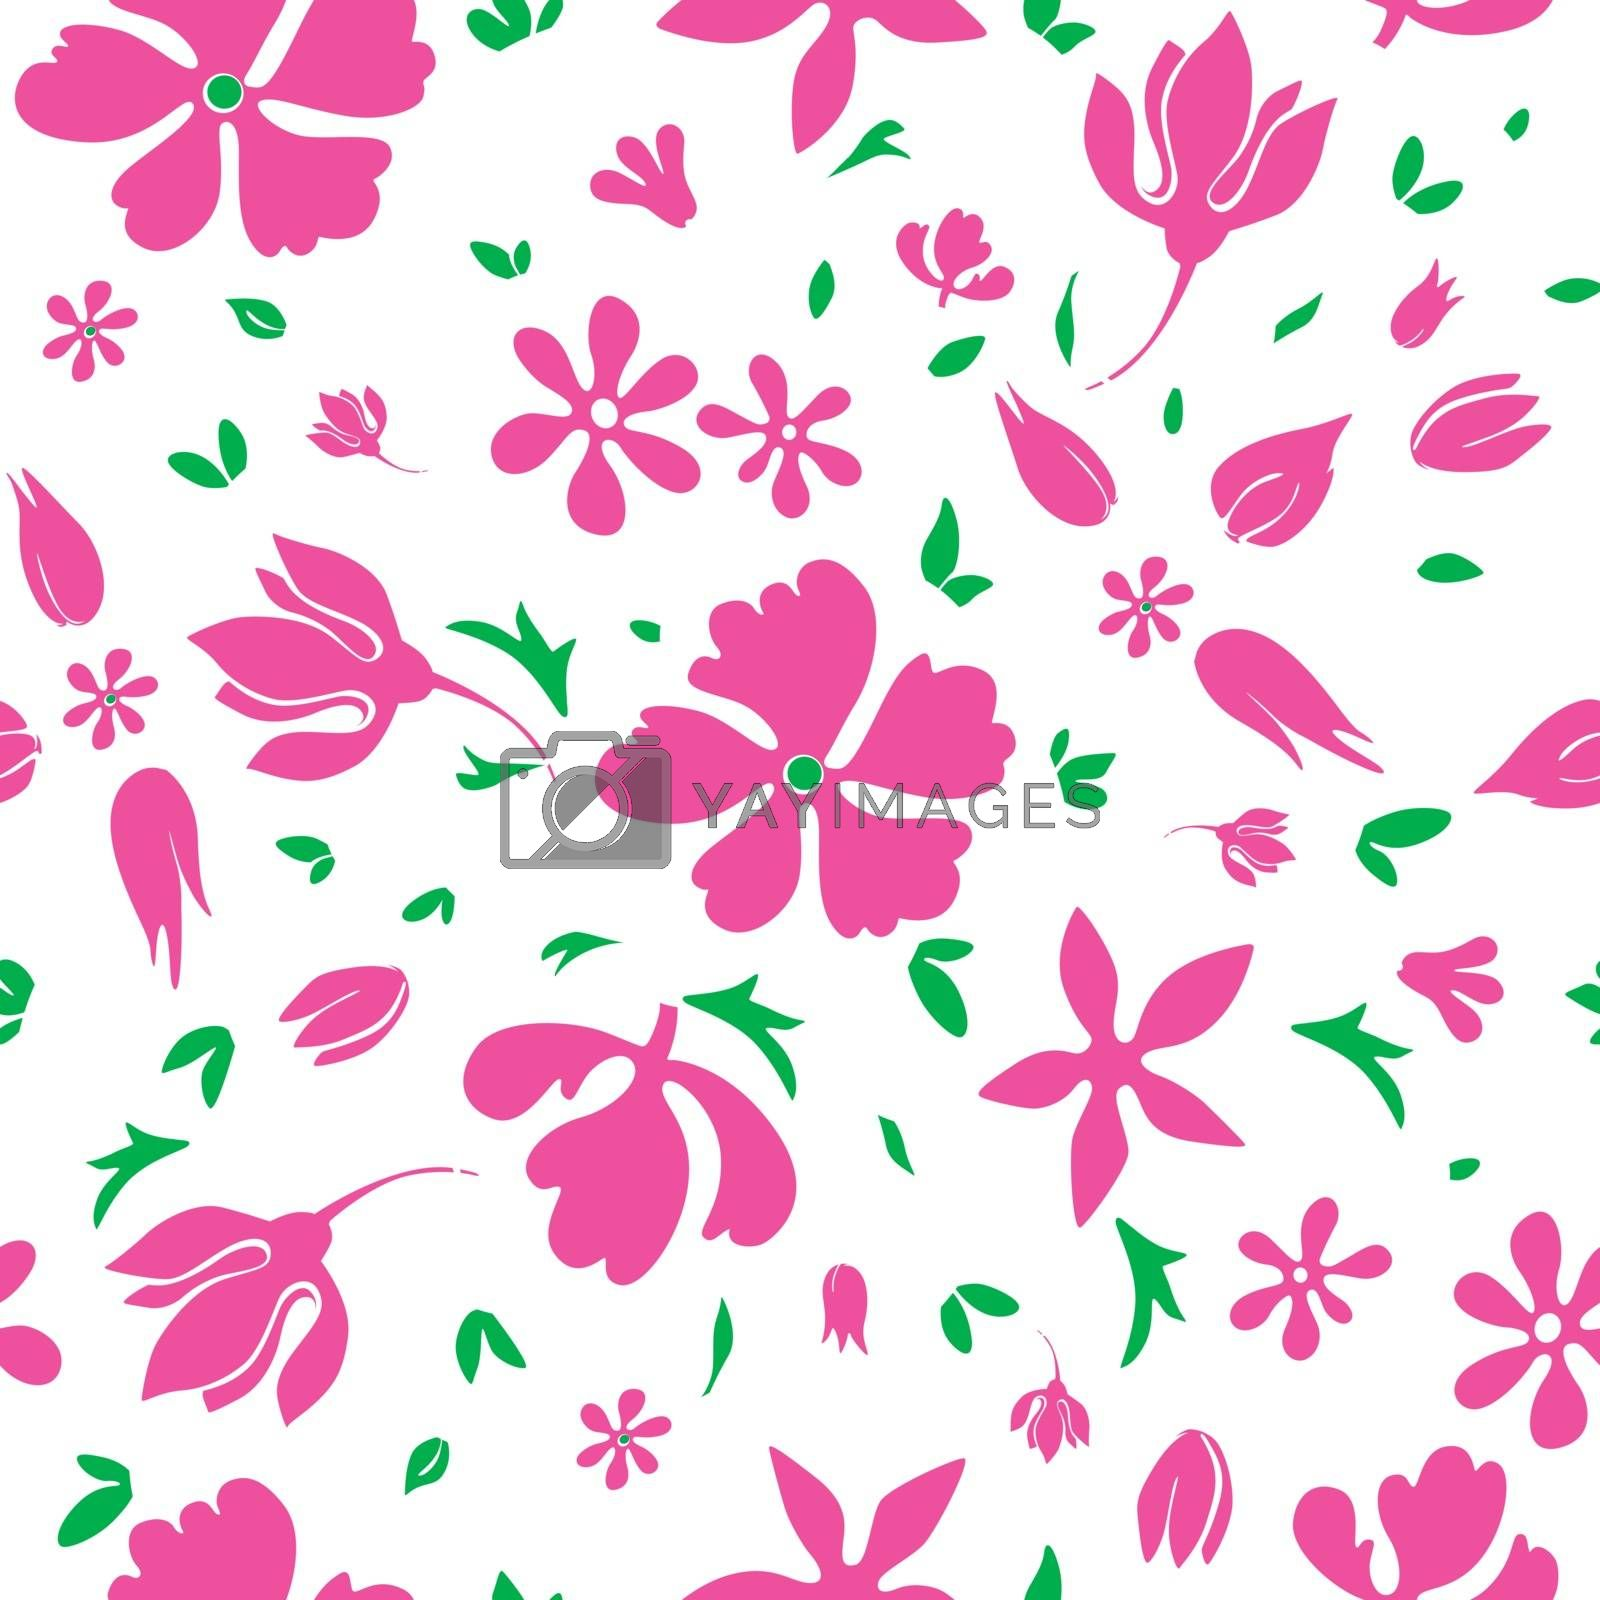 Royalty free image of Vector Magenta Flowers Silhouettes Seamless Pattern by Oksancia